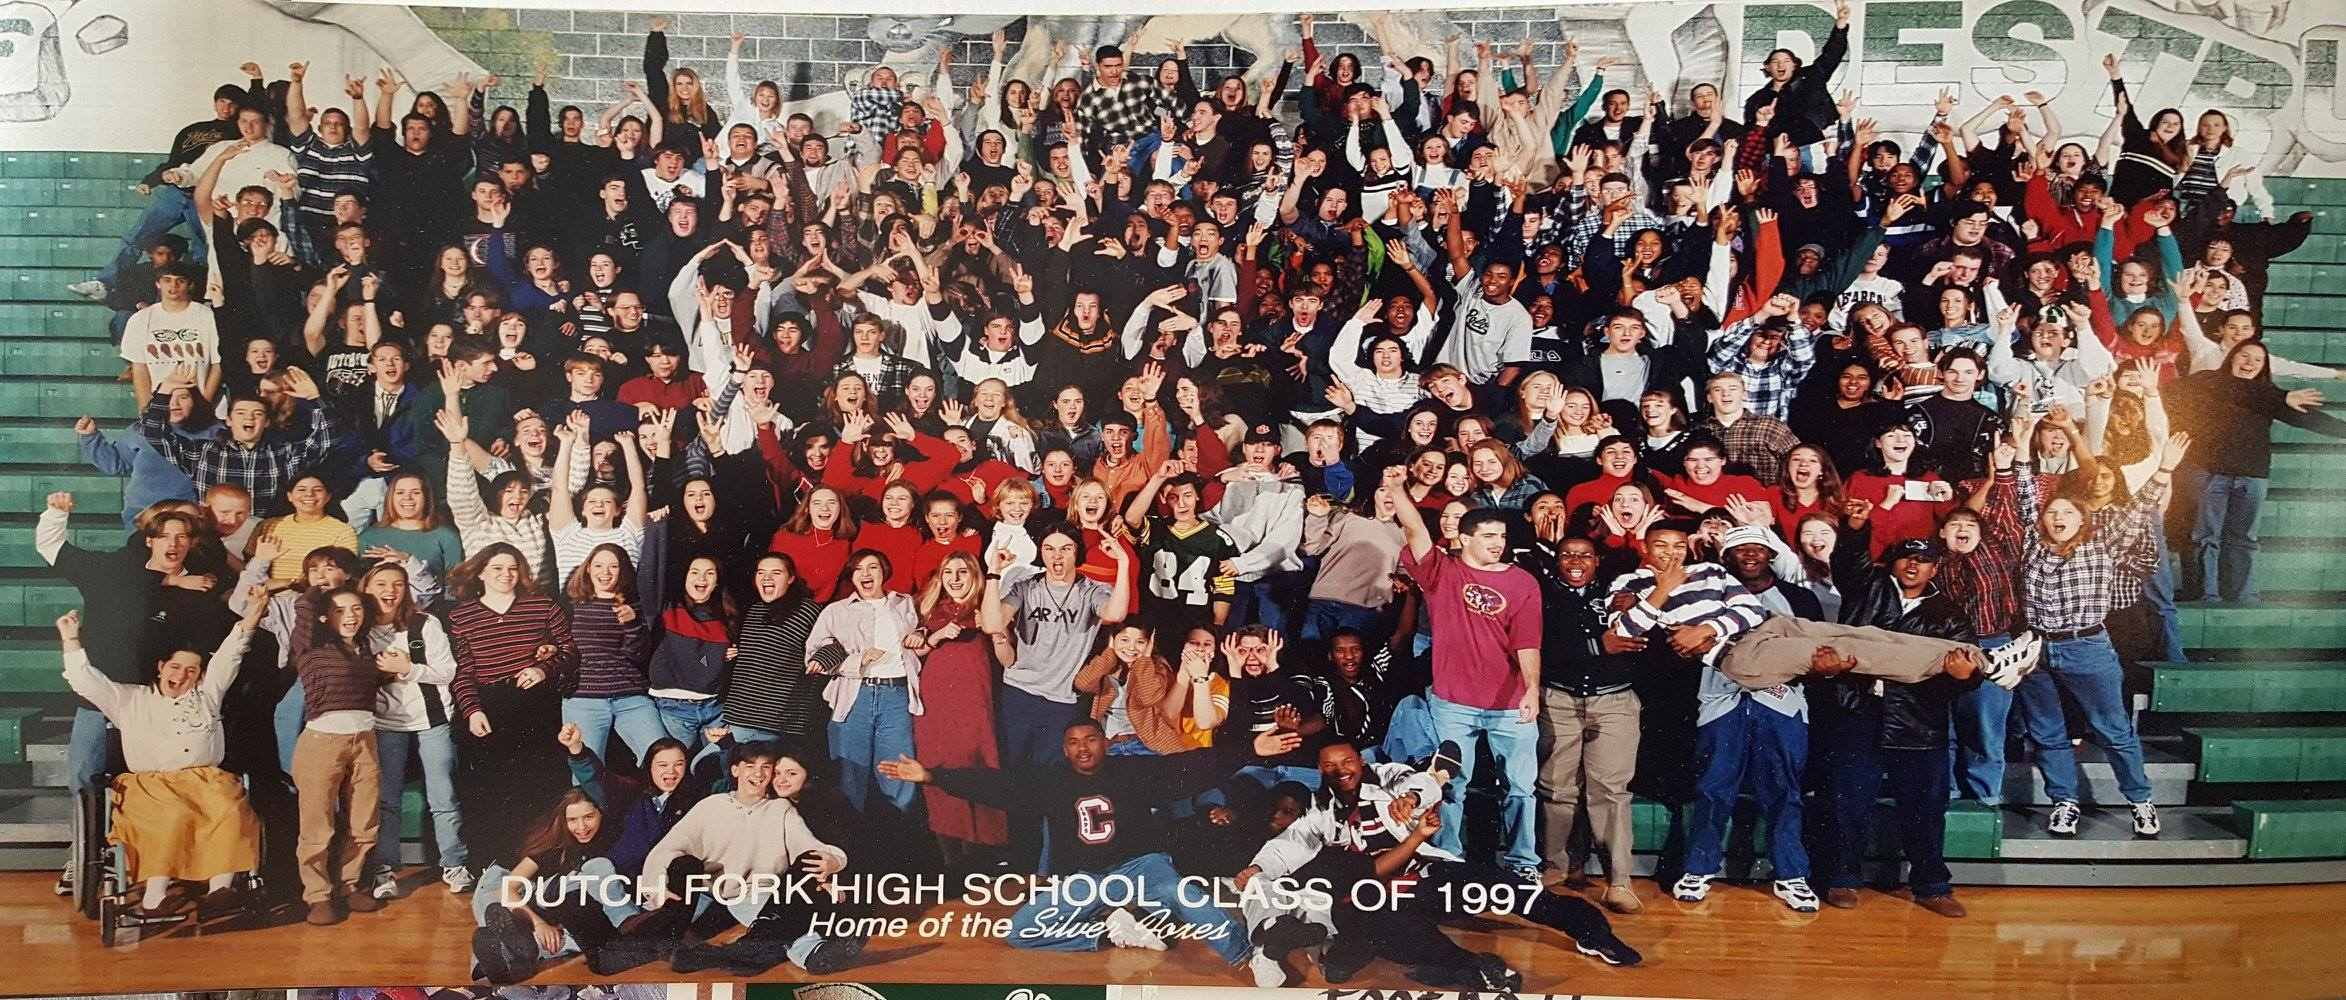 Class Picture 1997 Funny